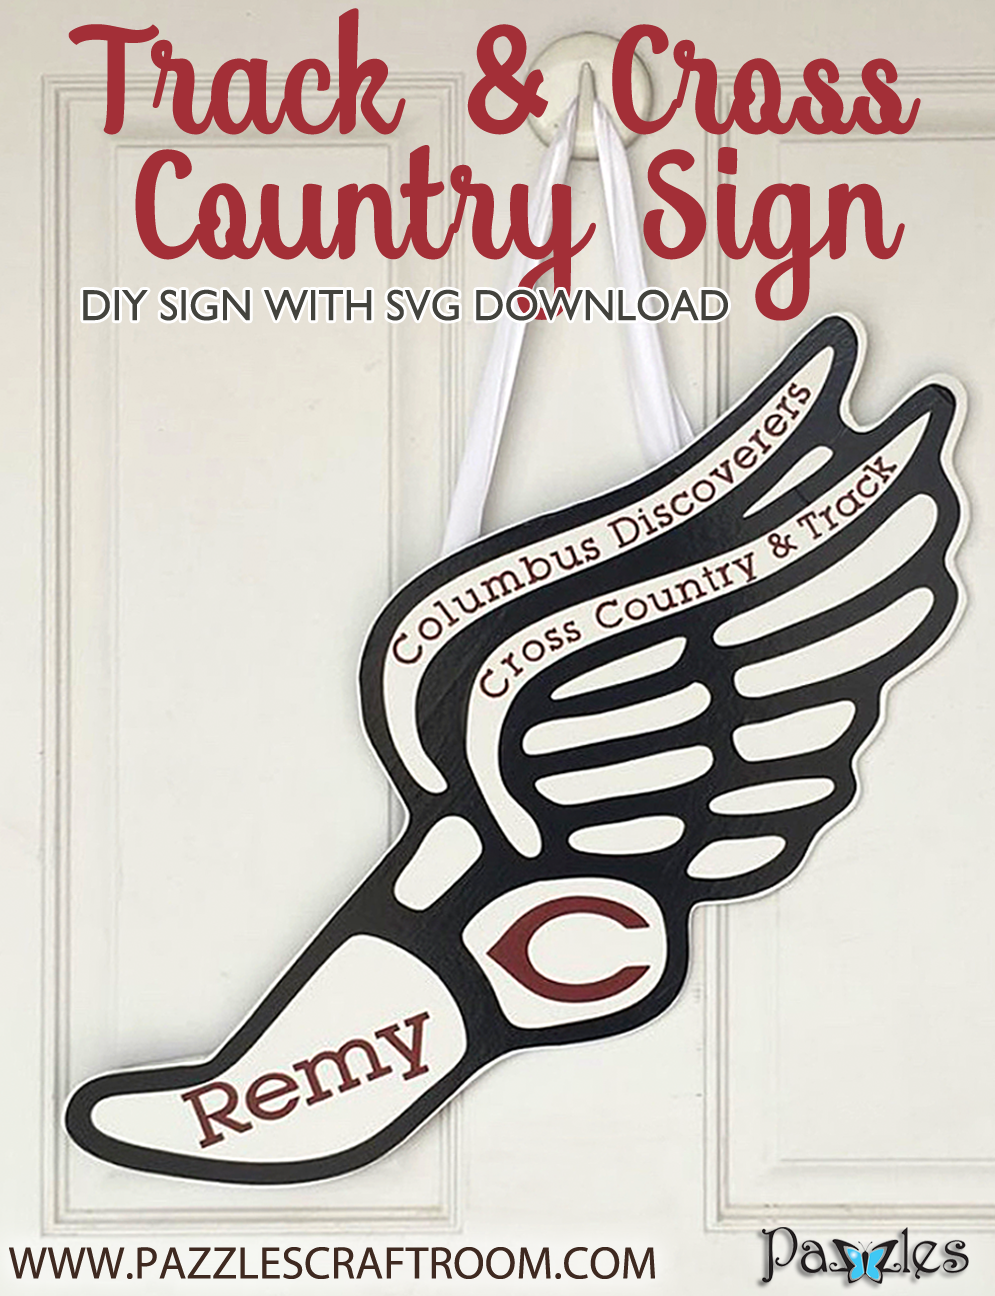 Pazzles DIY Track and Cross Country Sign with instant SVG download. Compatible with all major electronic cutters including Pazzles Inspiration, Cricut, and Silhouette Cameo. Design by Sara Weber.